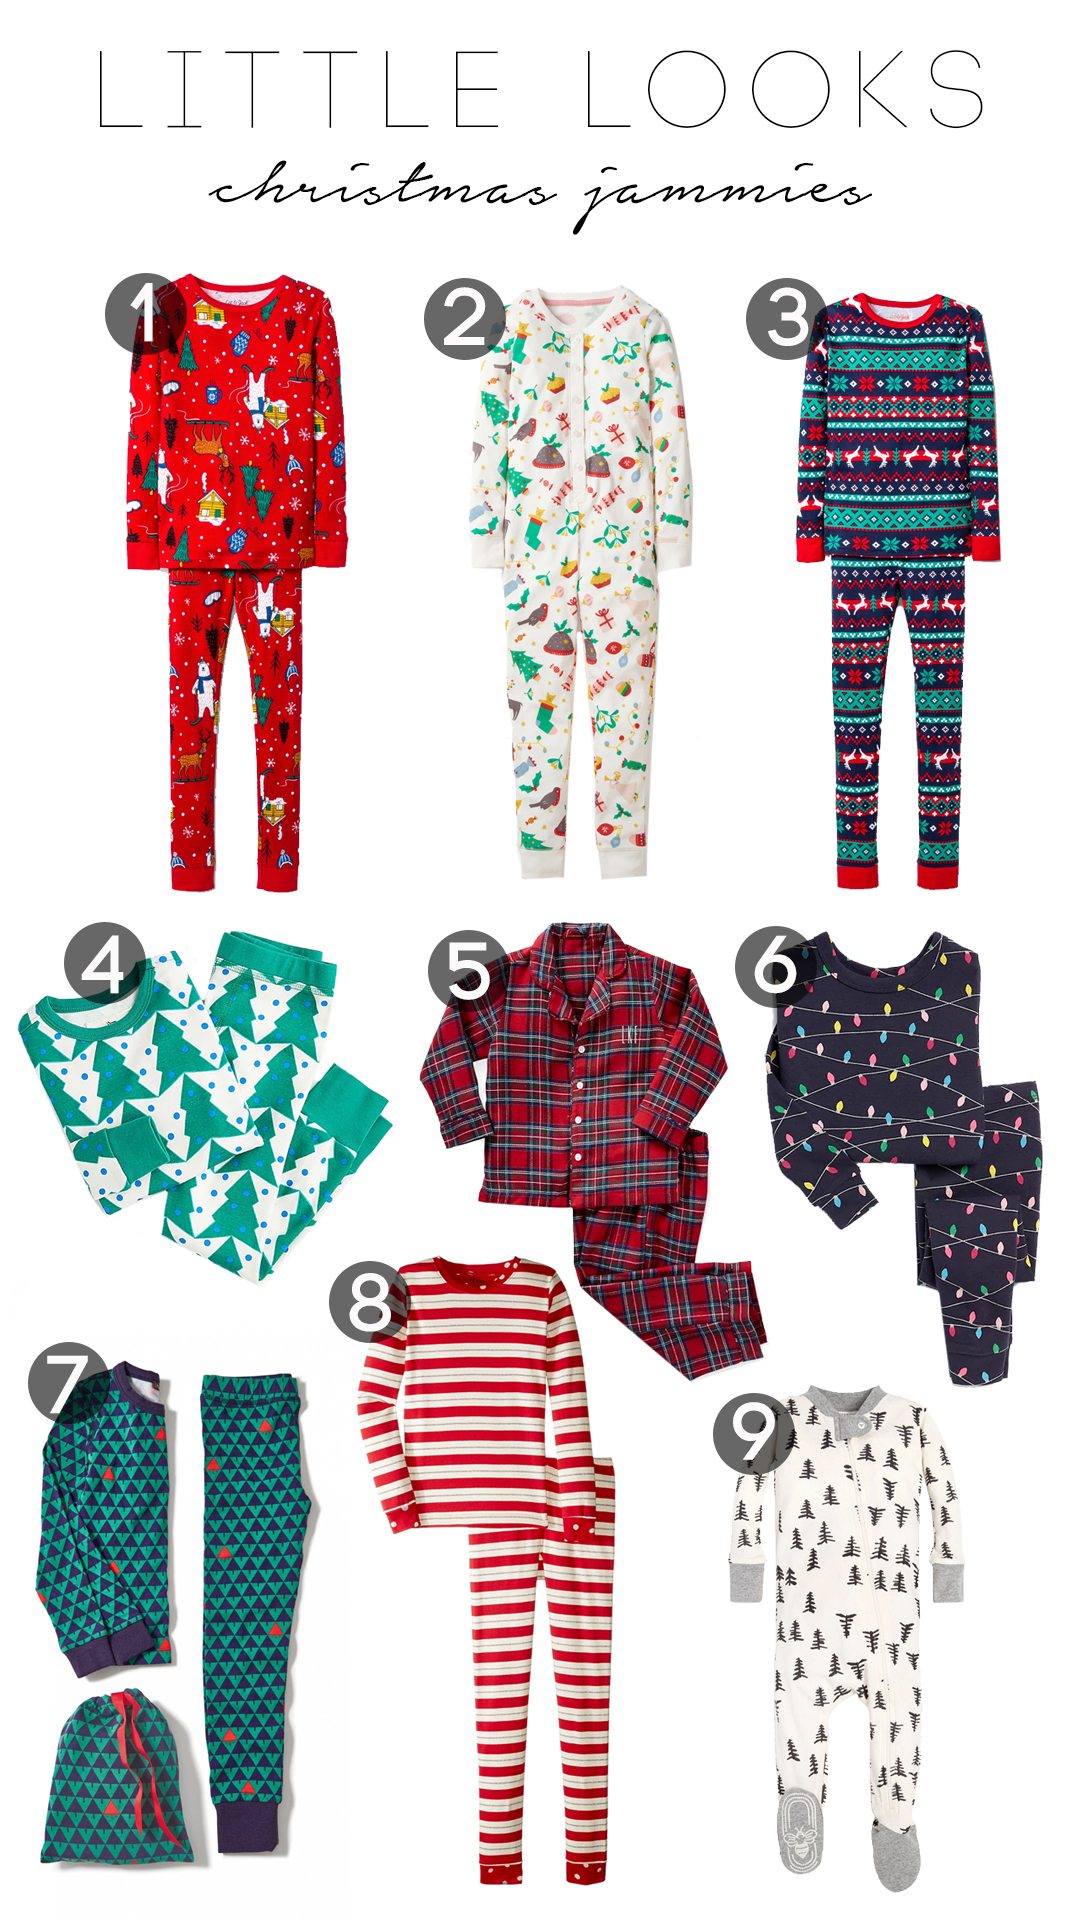 Little looks: Christmas jammies 2018 | Tomorrow\'s To Dos